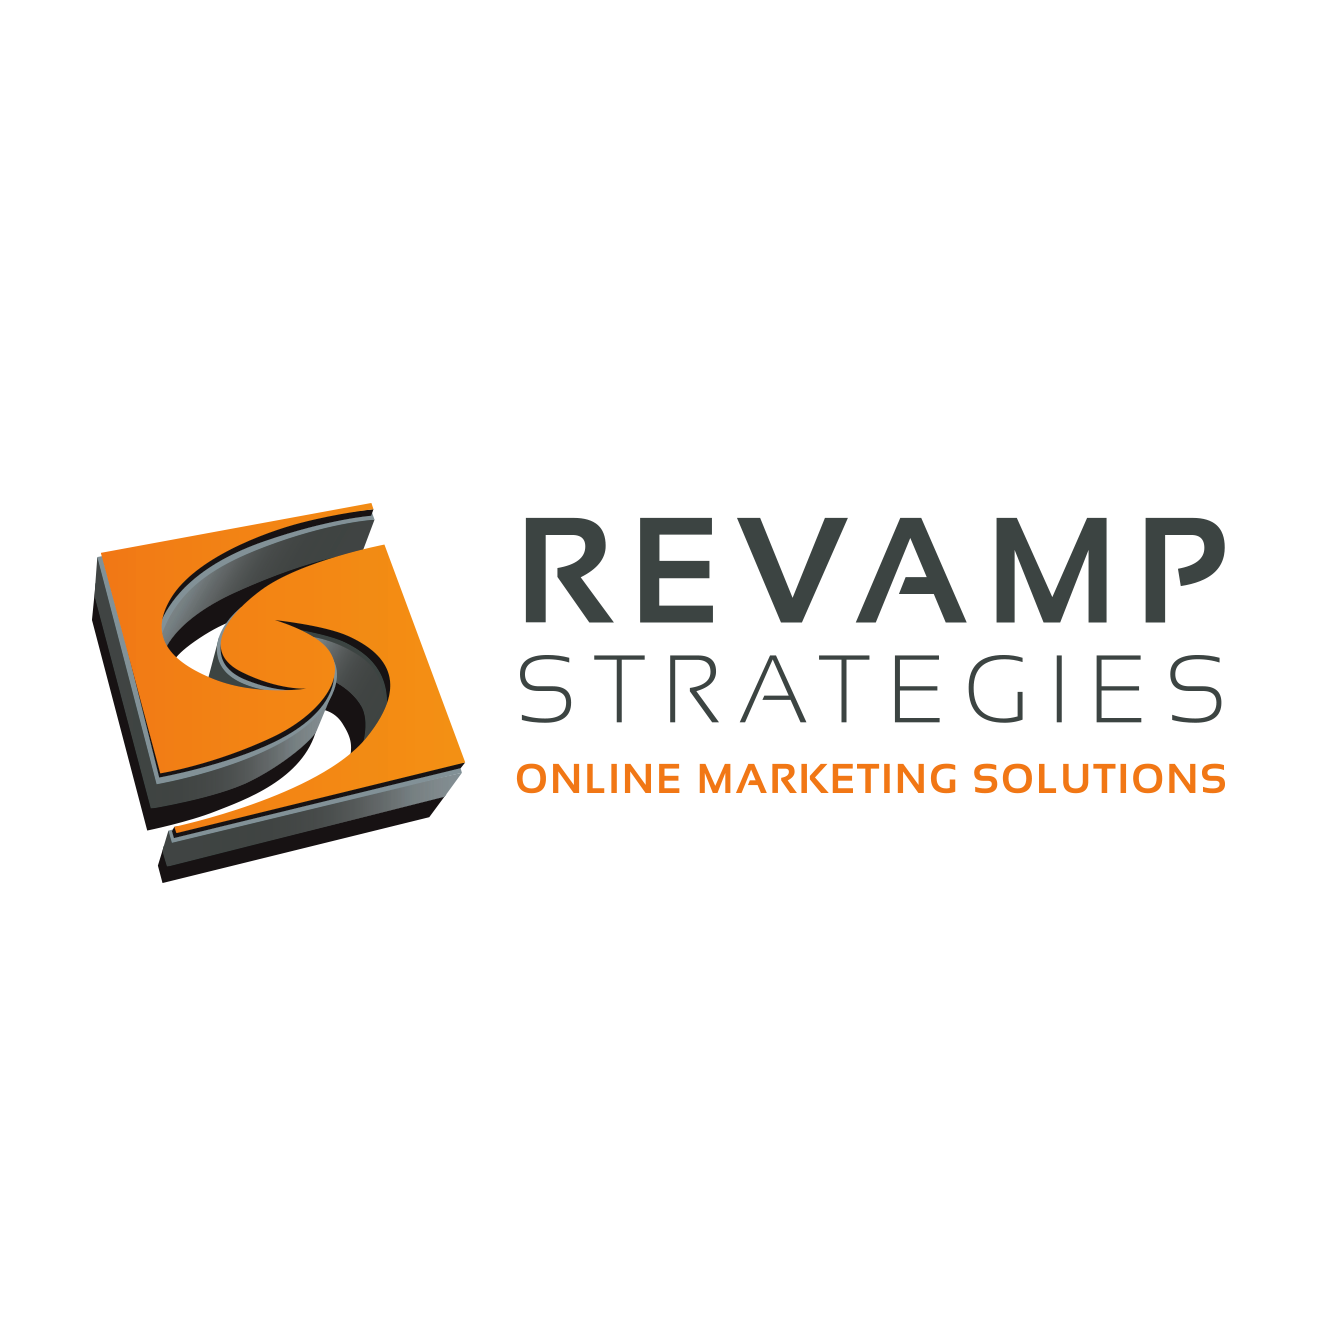 Revamp Strategies, LLC - N. Huntingdon, PA - Advertising Agencies & Public Relations